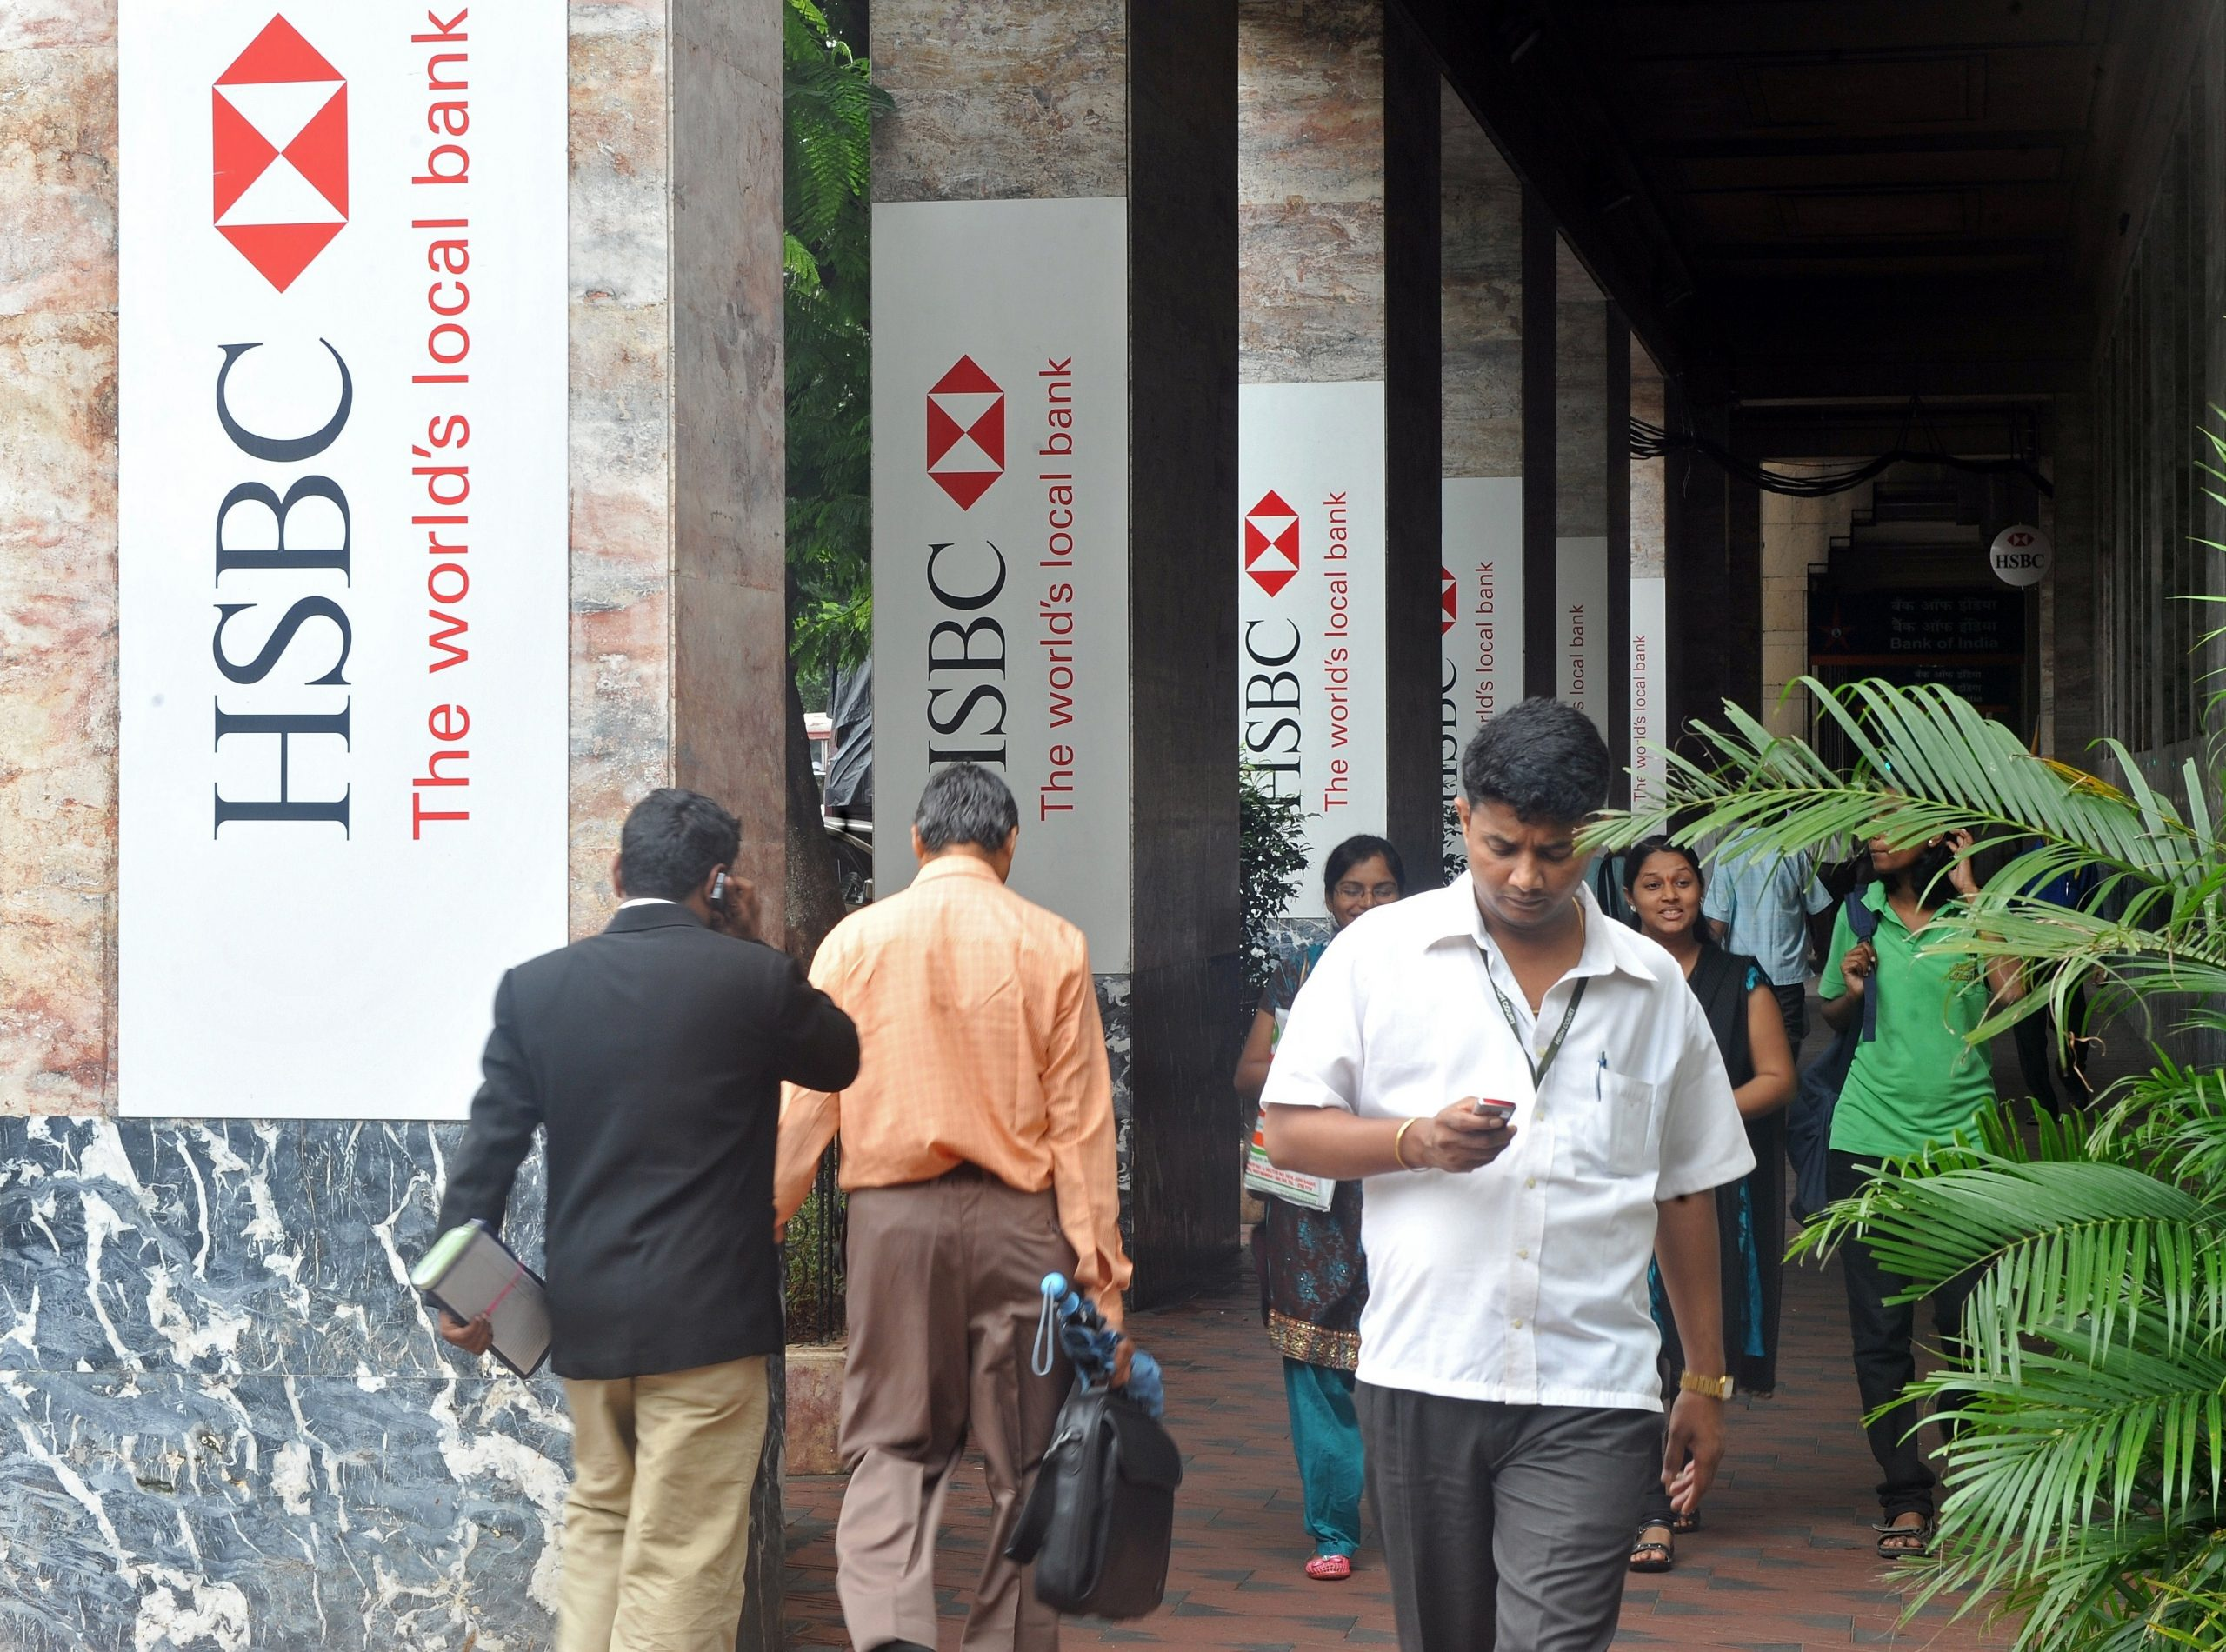 Pedestrians walk past HSBC signage outside the bank's Indian head office in Mumbai on August 2, 2011. Global banking giant HSBC will hire up to 15,000 people in emerging markets over the next three years, a spokeswoman said August 2, a day after it announced plans to slash 30,000 jobs worldwide.  AFP PHOTO/Indranil MUKHERJEE (Photo credit should read INDRANIL MUKHERJEE/AFP via Getty Images)